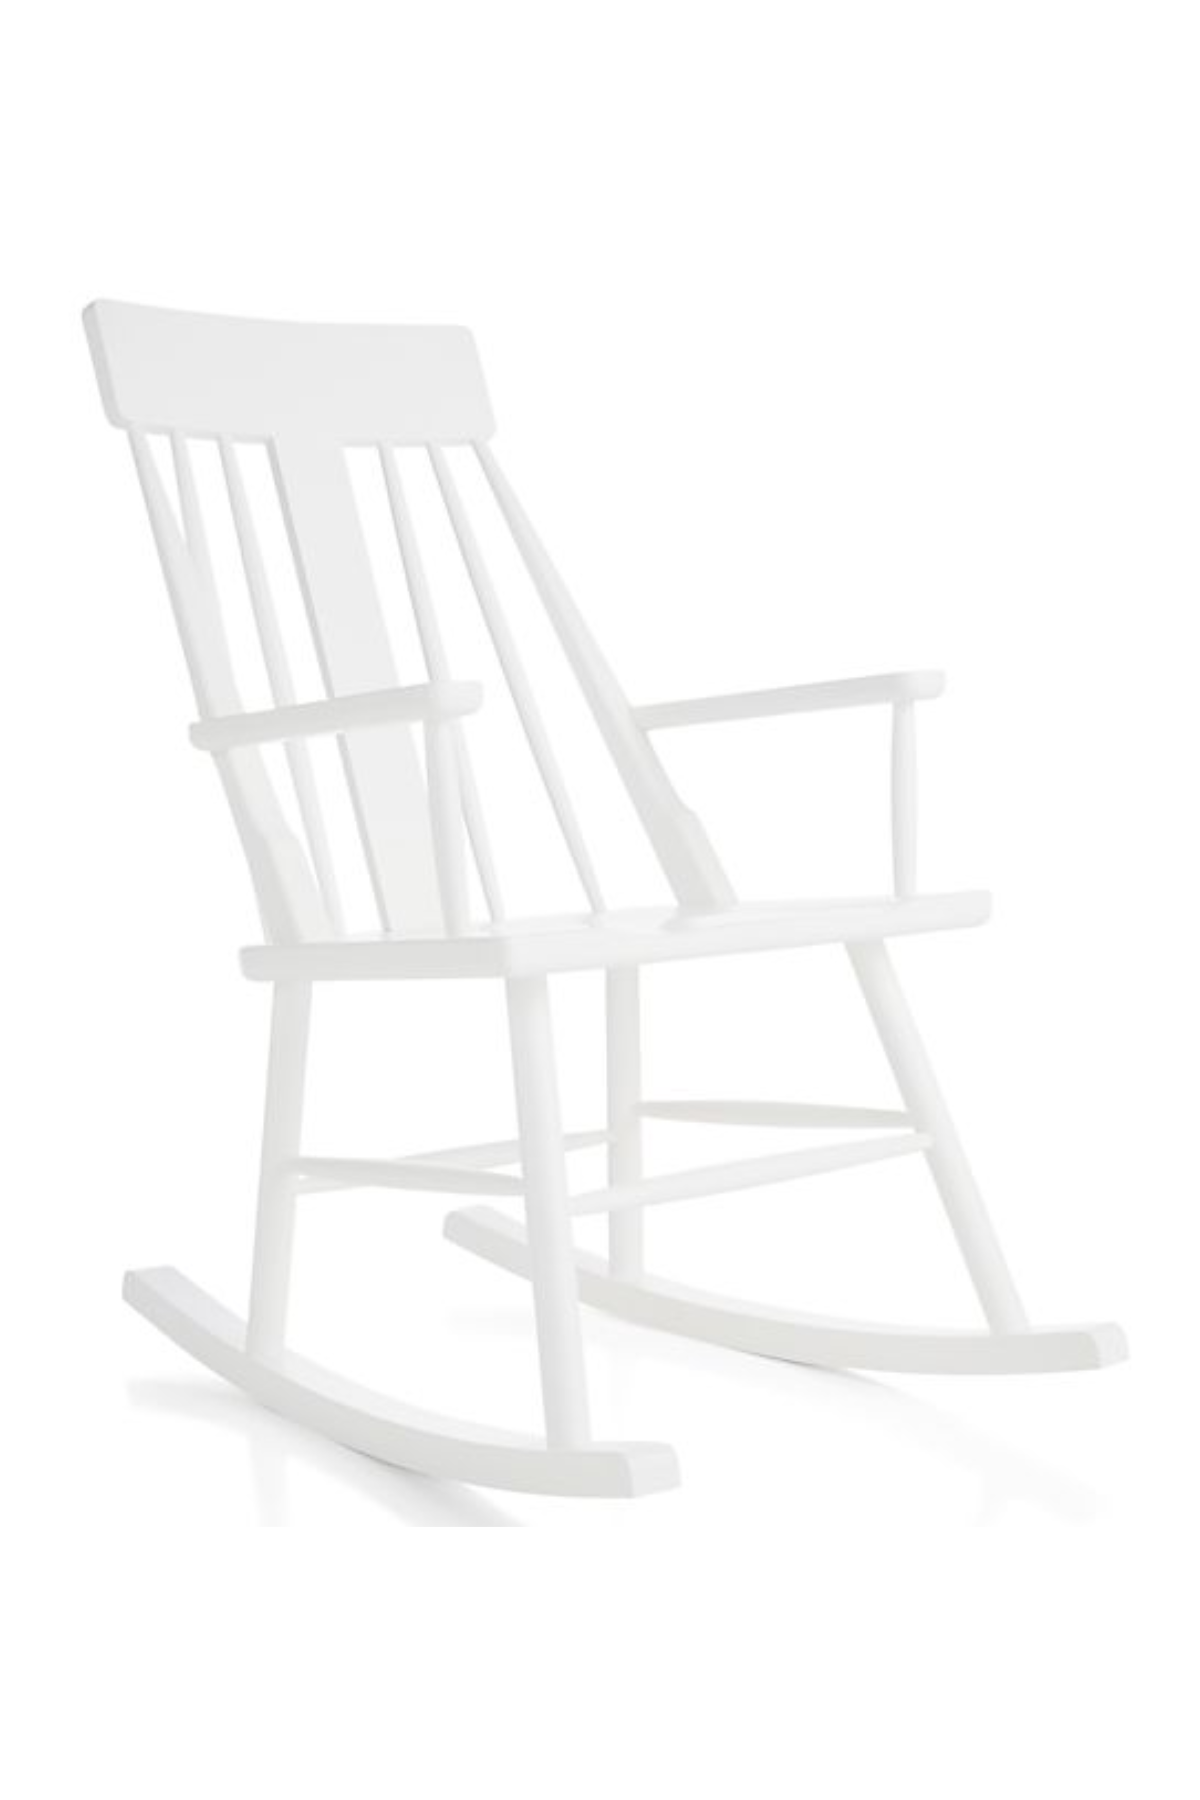 White Rocking Chair Png - Best Rocking Chairs - Modern Rocking Chairs - 15 Sleek and ...